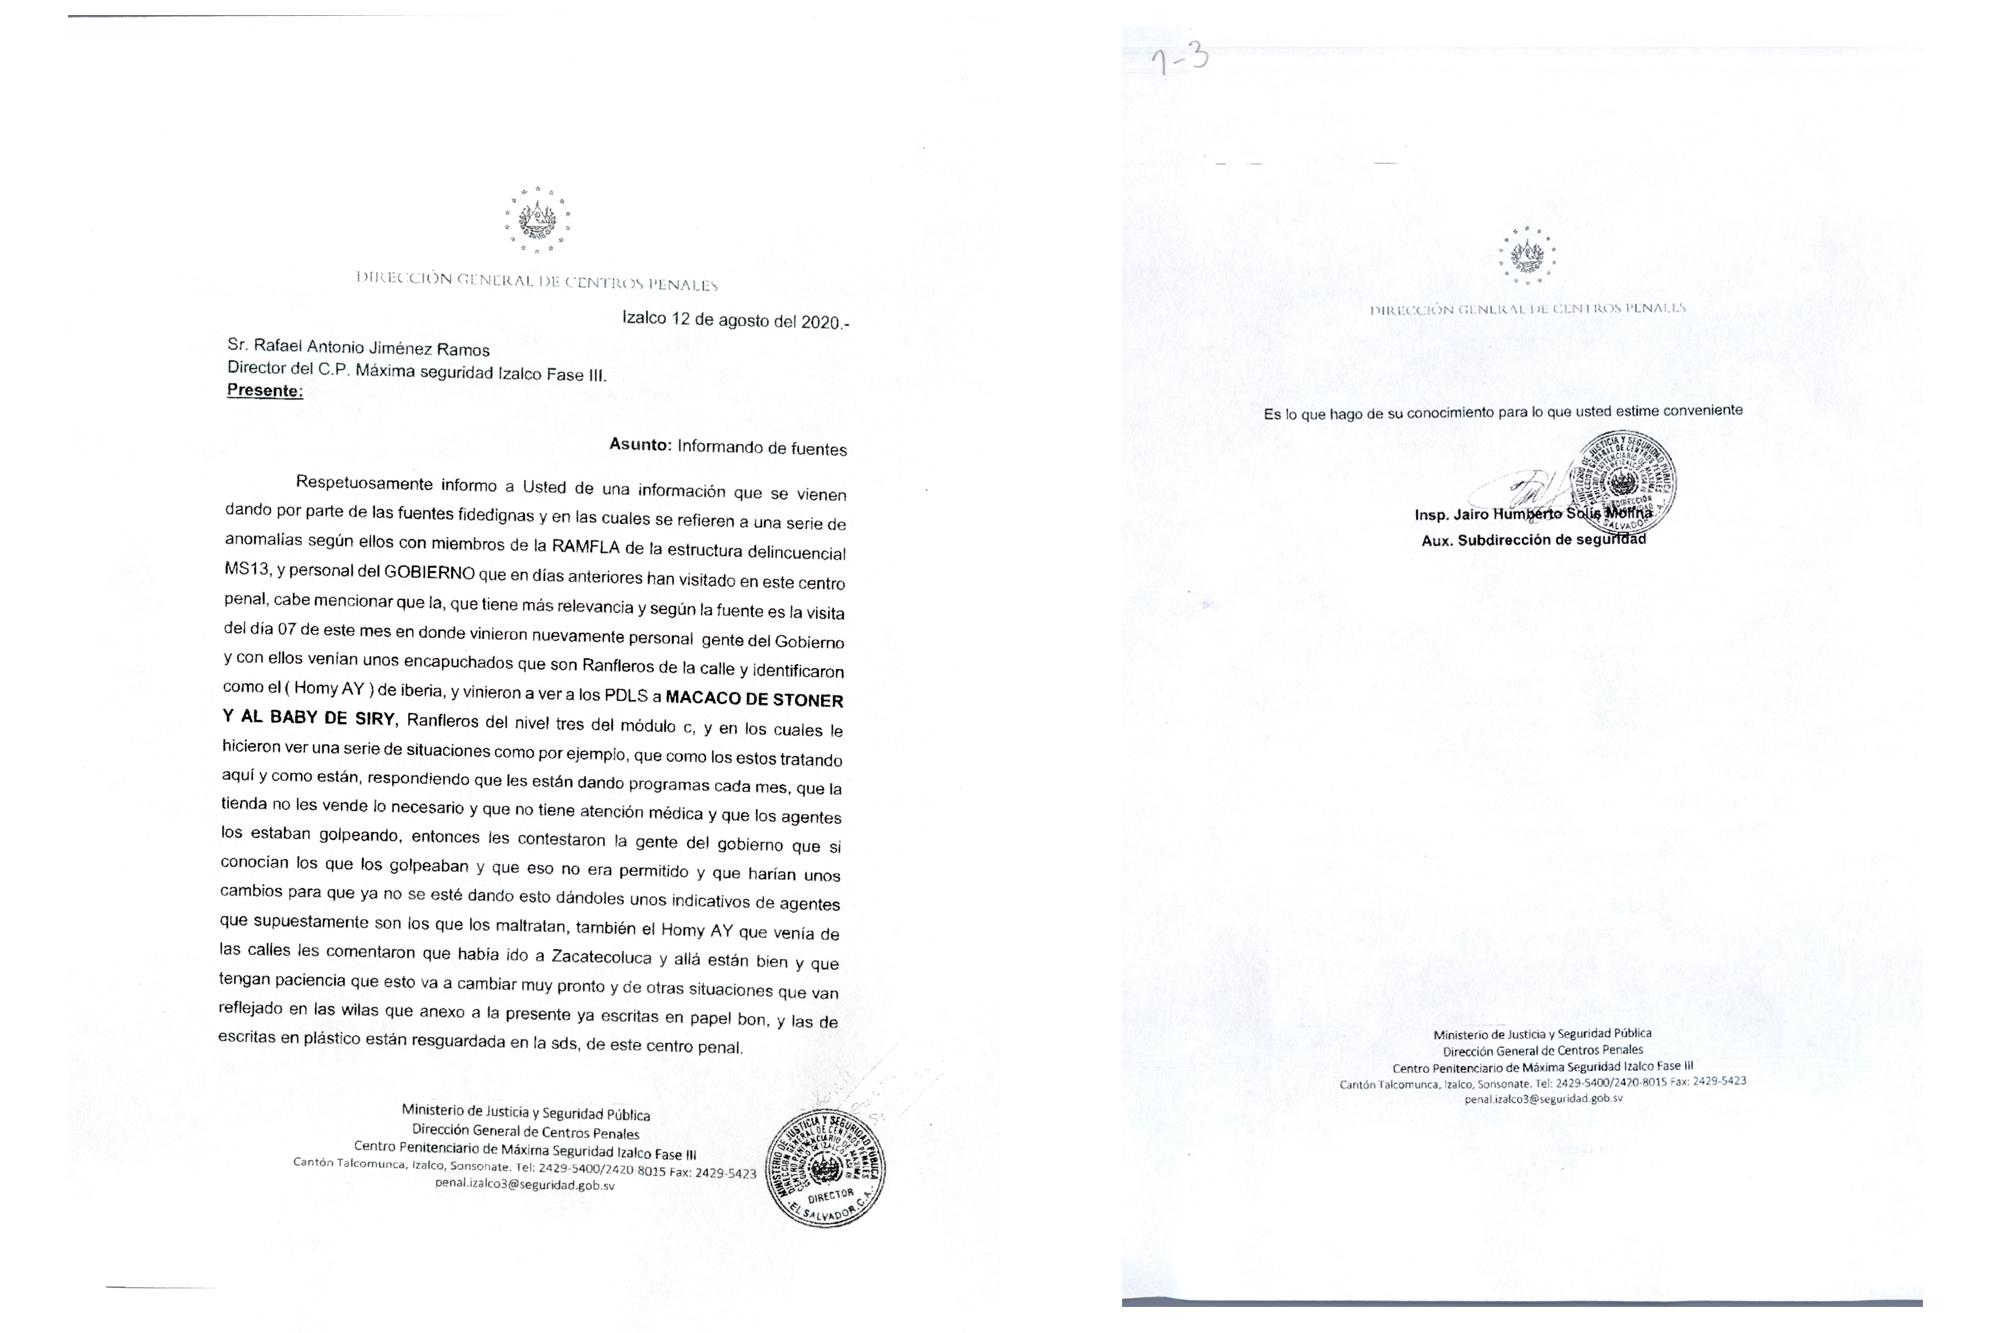 "Inspector Jairo Humberto Solís Molina's report to the warden of Izalco's maximum-security wing (""Phase III""), dated August 12, 2020. That same day, Solís Molina reported a series of ""abnormalities"" between members of MS-13 senior leadership (""la ranfla"") and ""administration officials,"" and noted that officials ""returned"" on August 7 with ""masked ranfleros from the street."" He identified one ranflero, or MS-13 leader, as ""Ay"" of the Iberias clique, and noted that the group met with Macaco of Stoner and Baby of City, both of whom are incarcerated in Izalco. The report confirms that Ay told Macaco and Baby that he had visited Zacatecoluca and asked them to be patient because ""things will change very soon."""